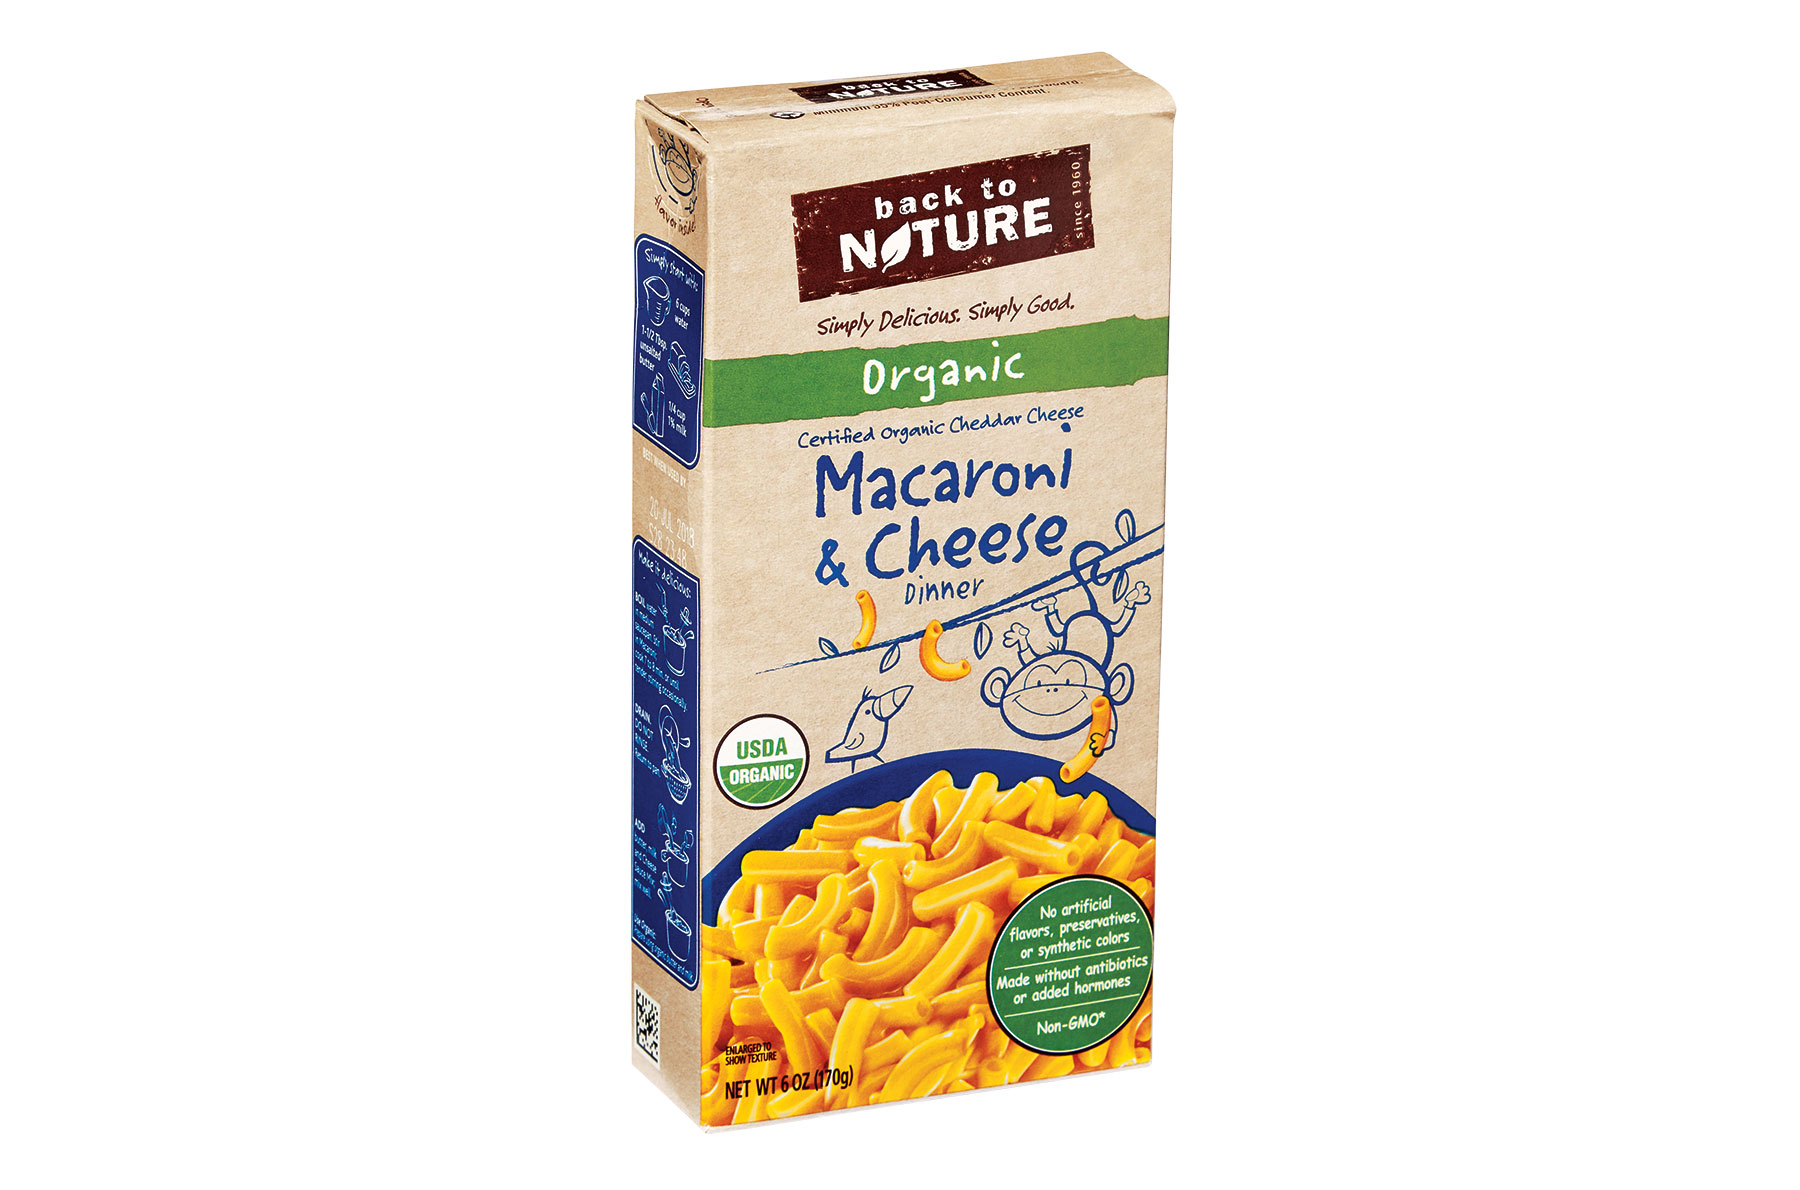 Back to Nature Organic USDA Macaroni & Cheese